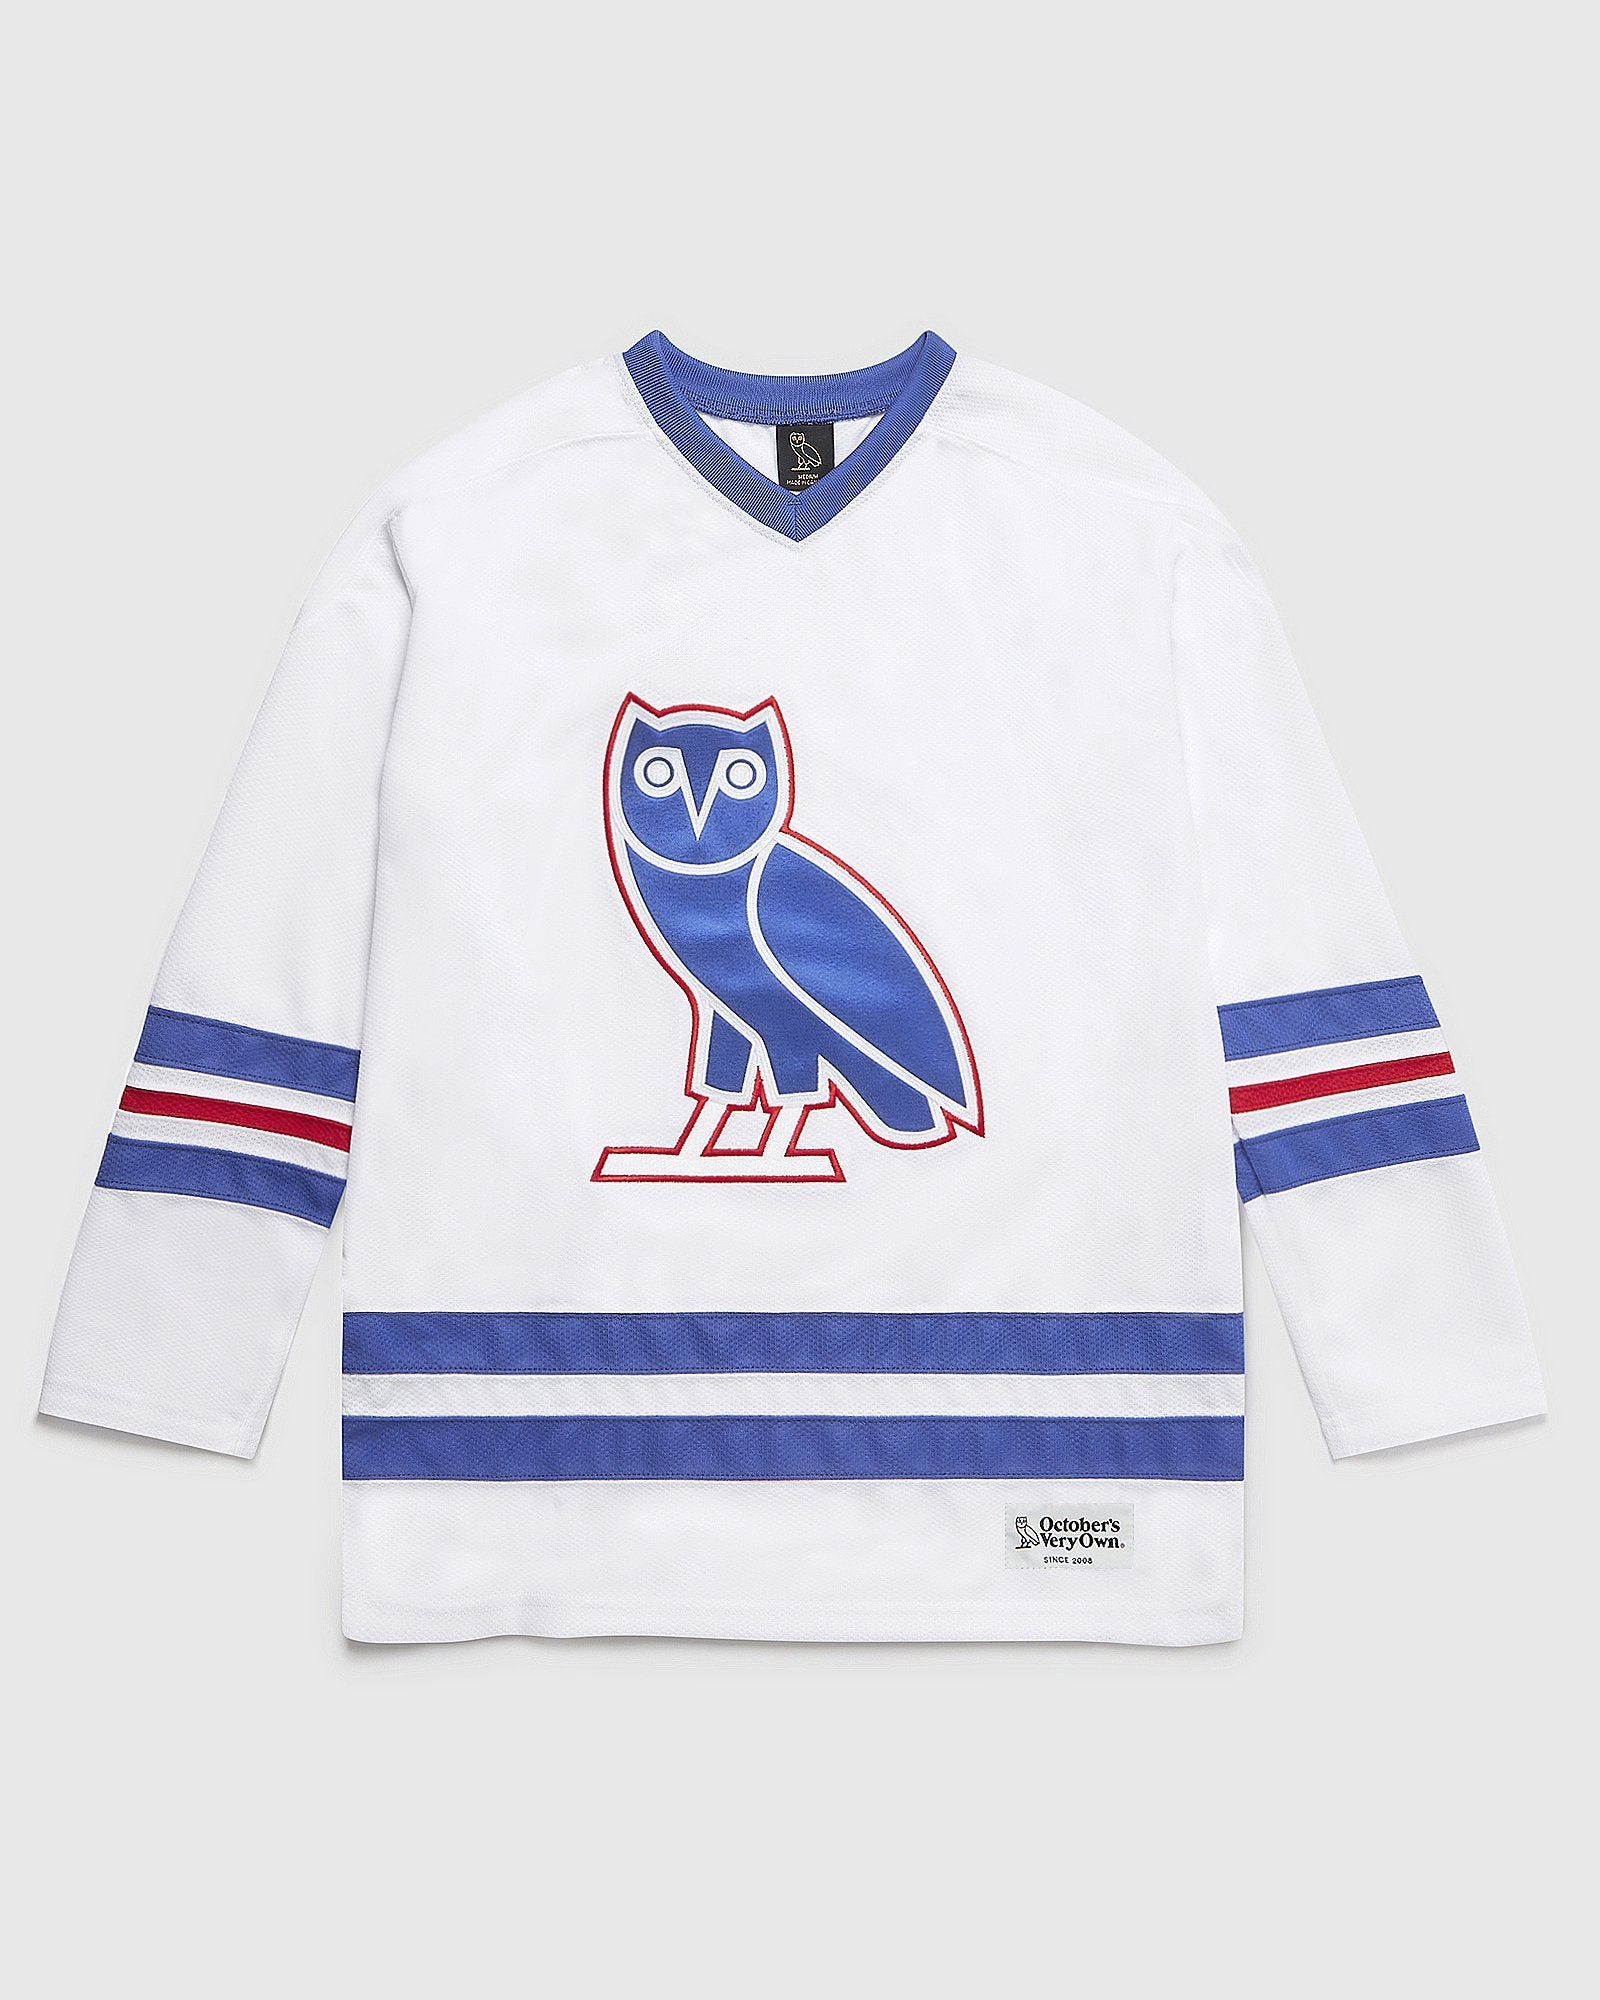 OVO HOCKEY JERSEY - WHITE IMAGE #1